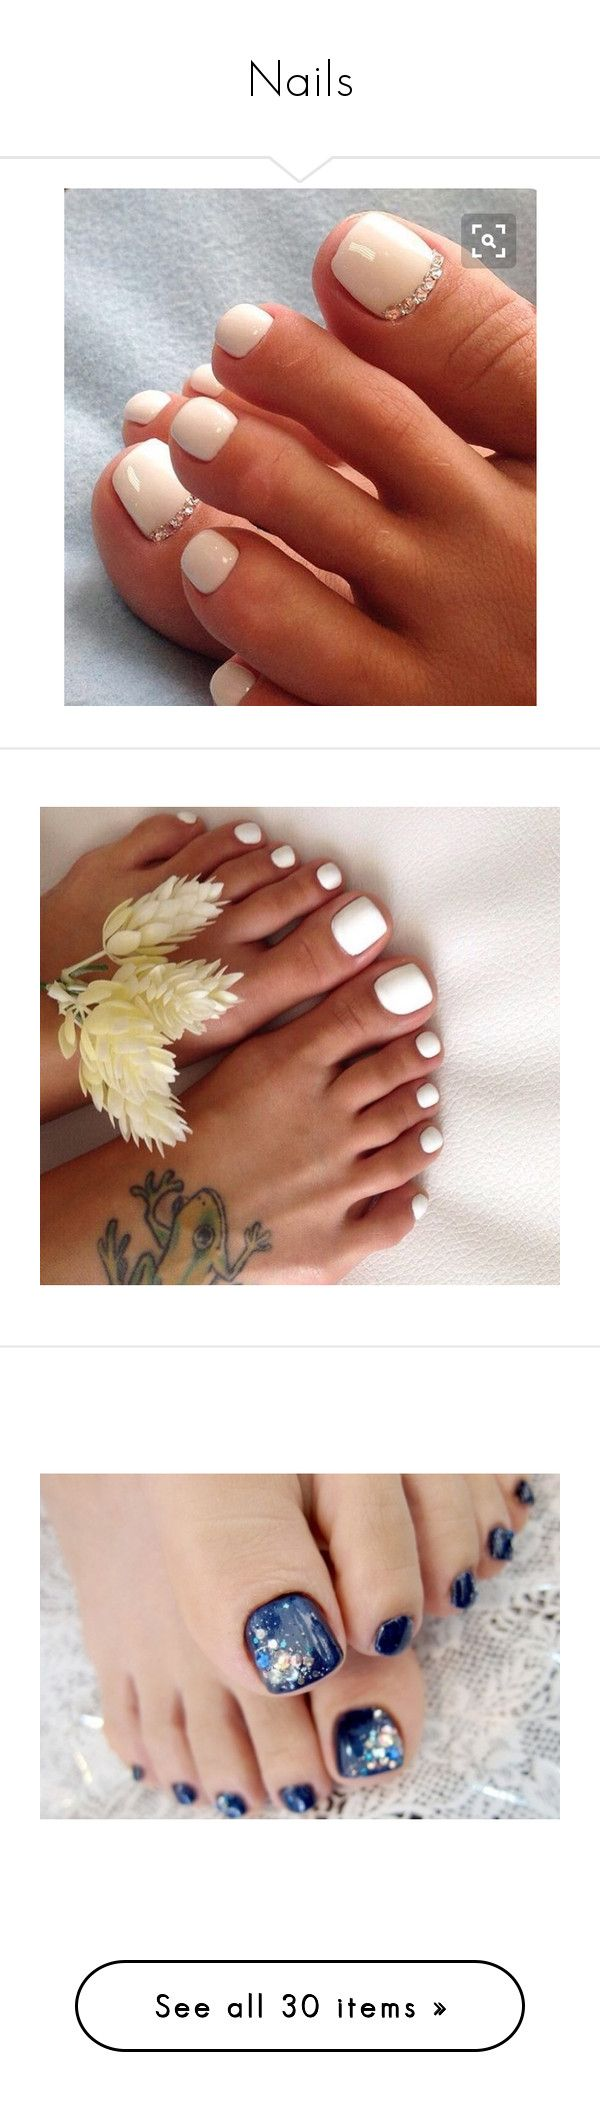 """""""Nails"""" by danielxox ❤ liked on Polyvore featuring nails, nail polish, makeup, accessories, pedicures, beauty products, nail care, nail treatments, aesthetic and pictures"""